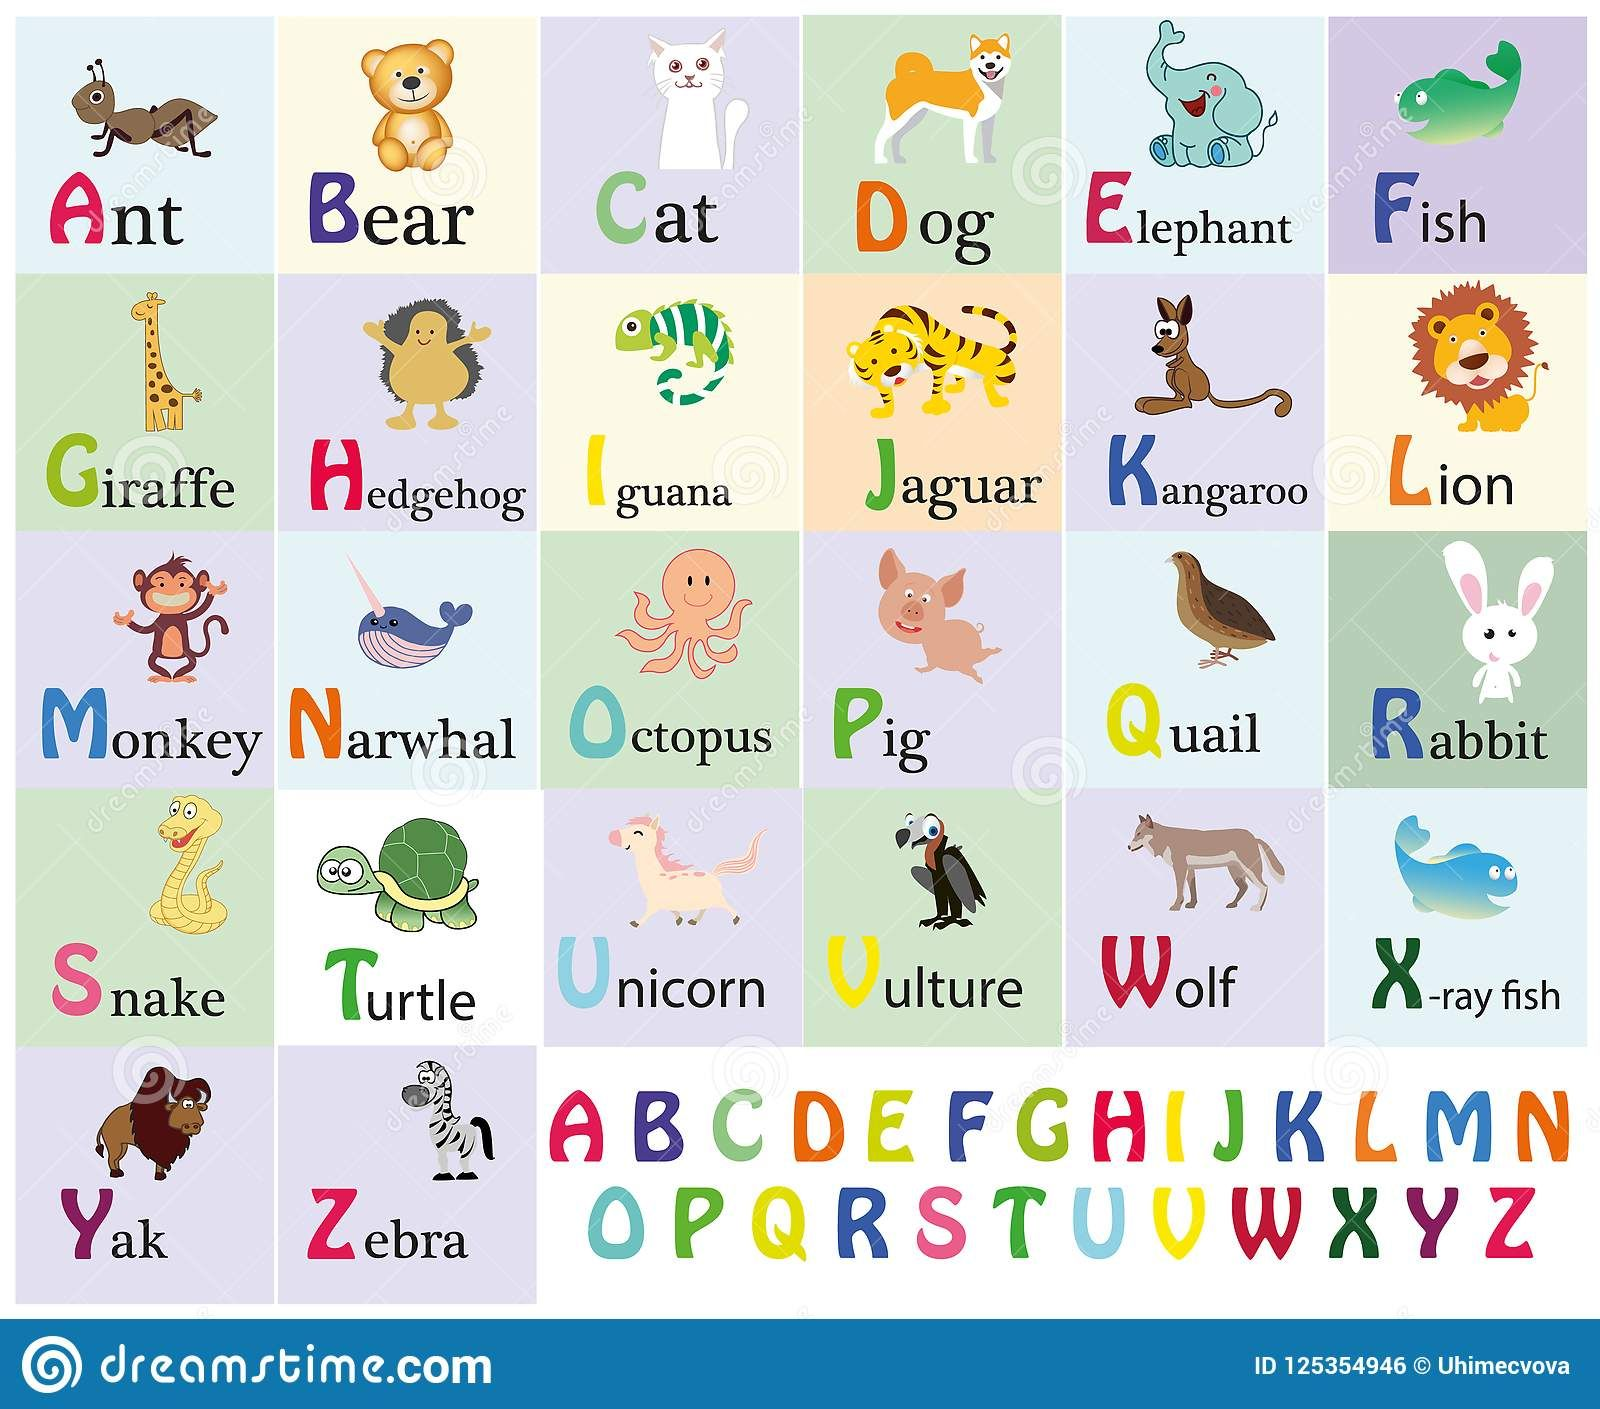 Zoo Alphabet Animal Alphabet Letters From A To Z Cartoon Cute Animals Isolated On White Backgr Animal Alphabet Animal Alphabet Letters Sight Word Flashcards